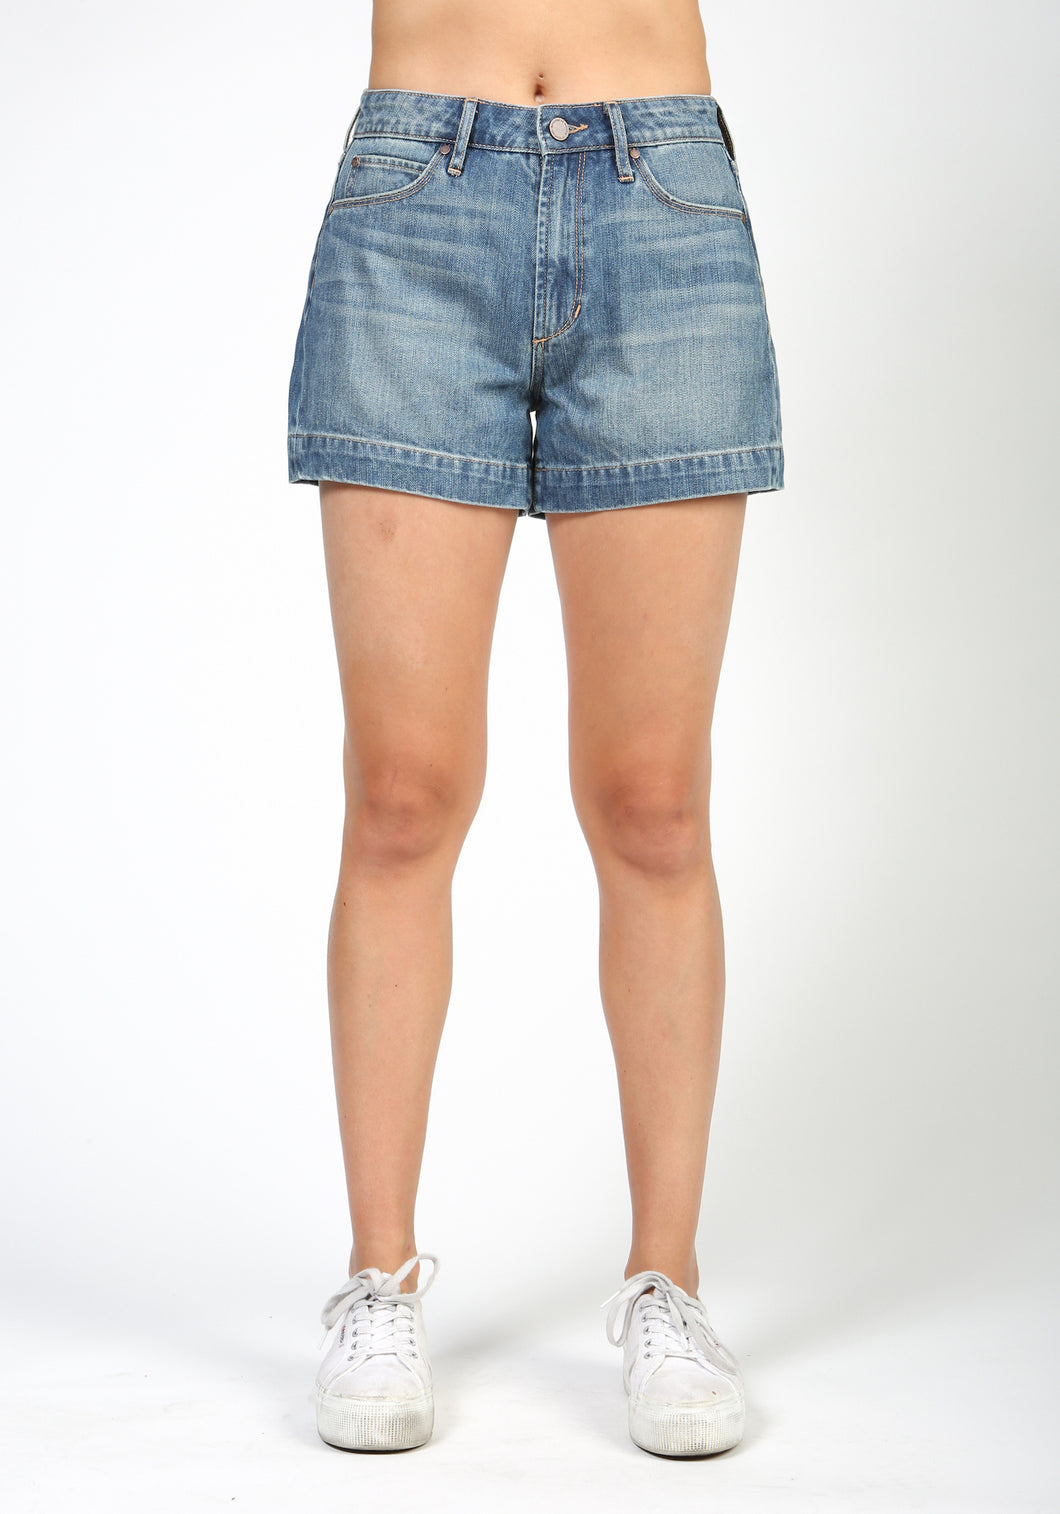 Ziggy High Rise Denim Short Marco Wash - Lily Brooklyn